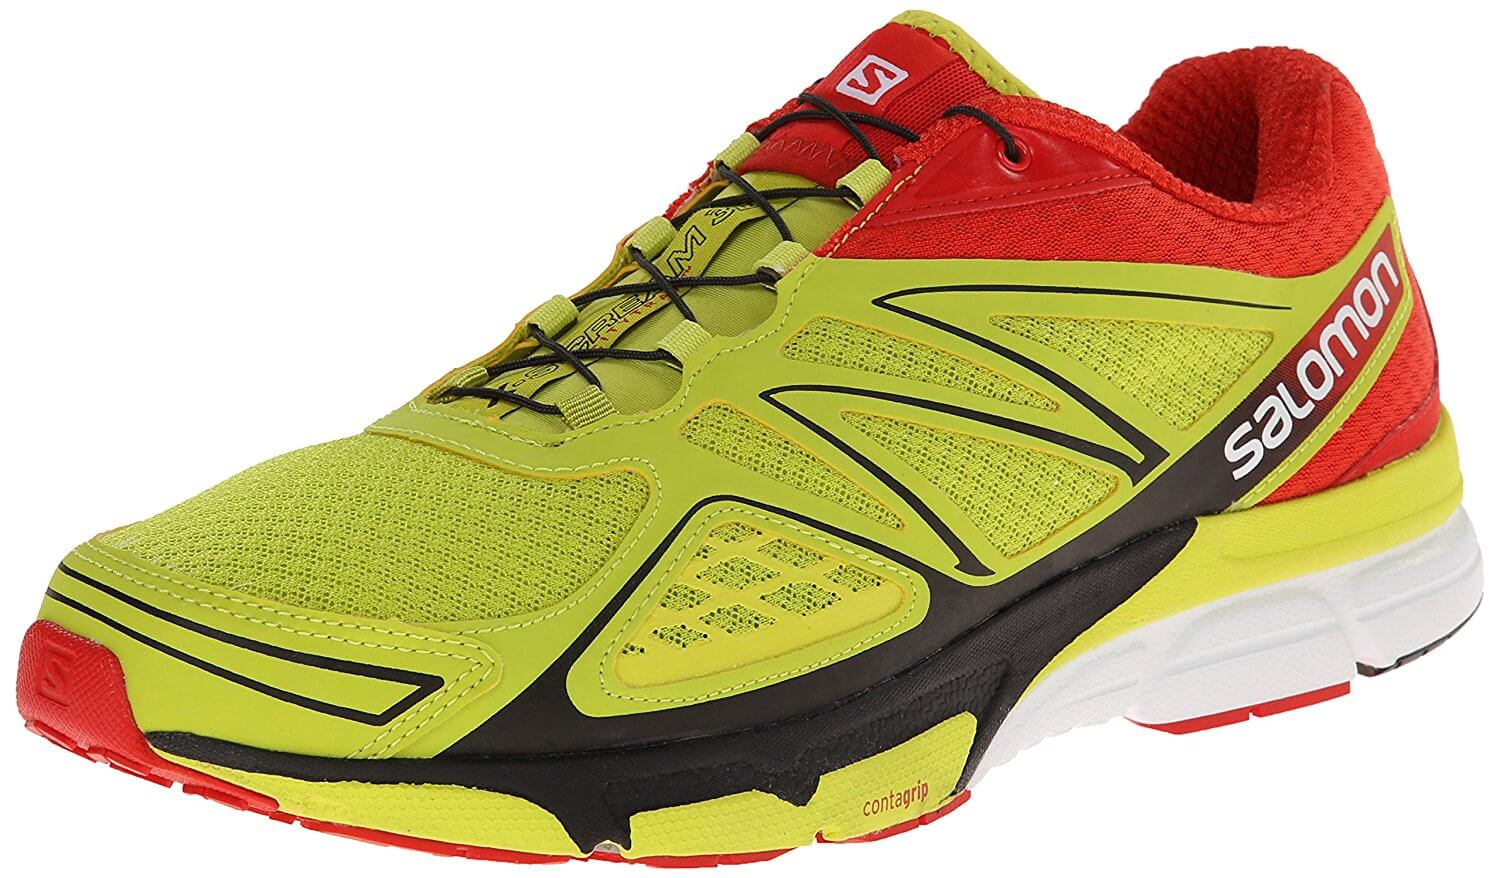 13.  Salomon X-Scream 3D